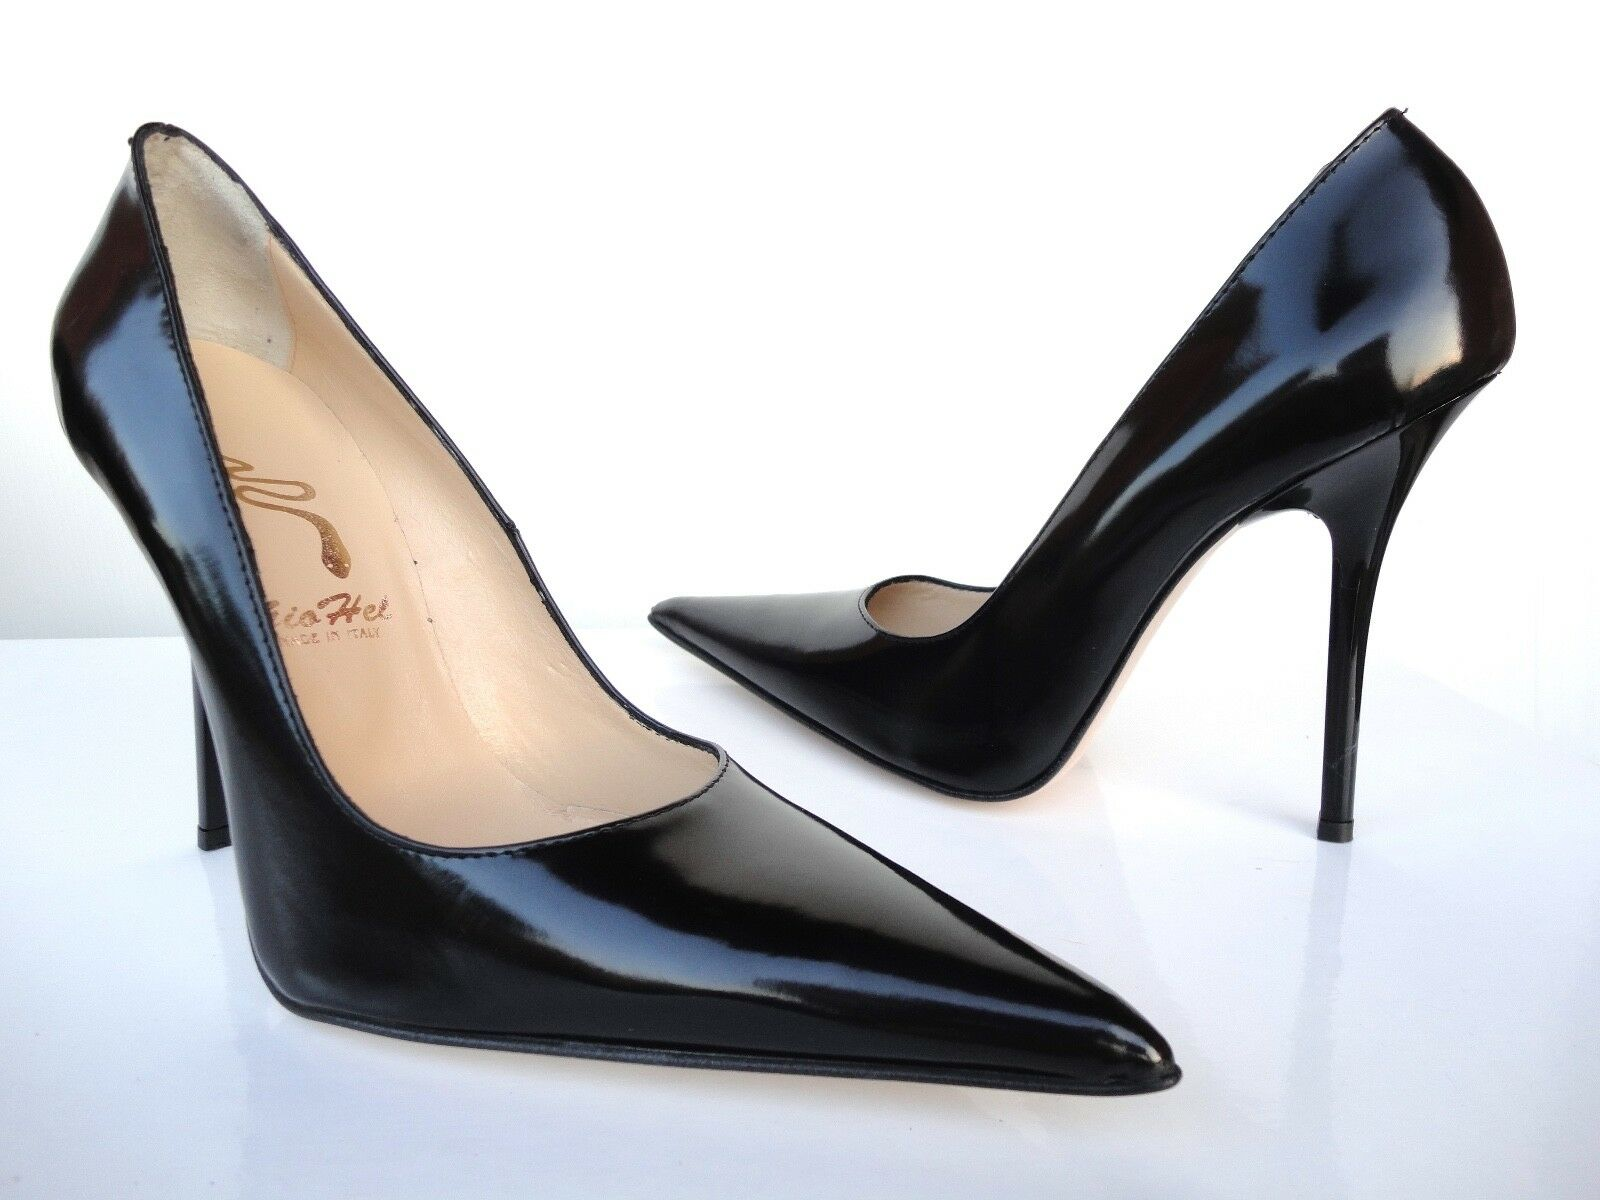 GIOHEL ITALY HIGH HEELS POINTY TOE PUMPS PUMPS TOE SCHUHE LEATHER DECOLTE BLACK SCHWARZ 40 743ae5